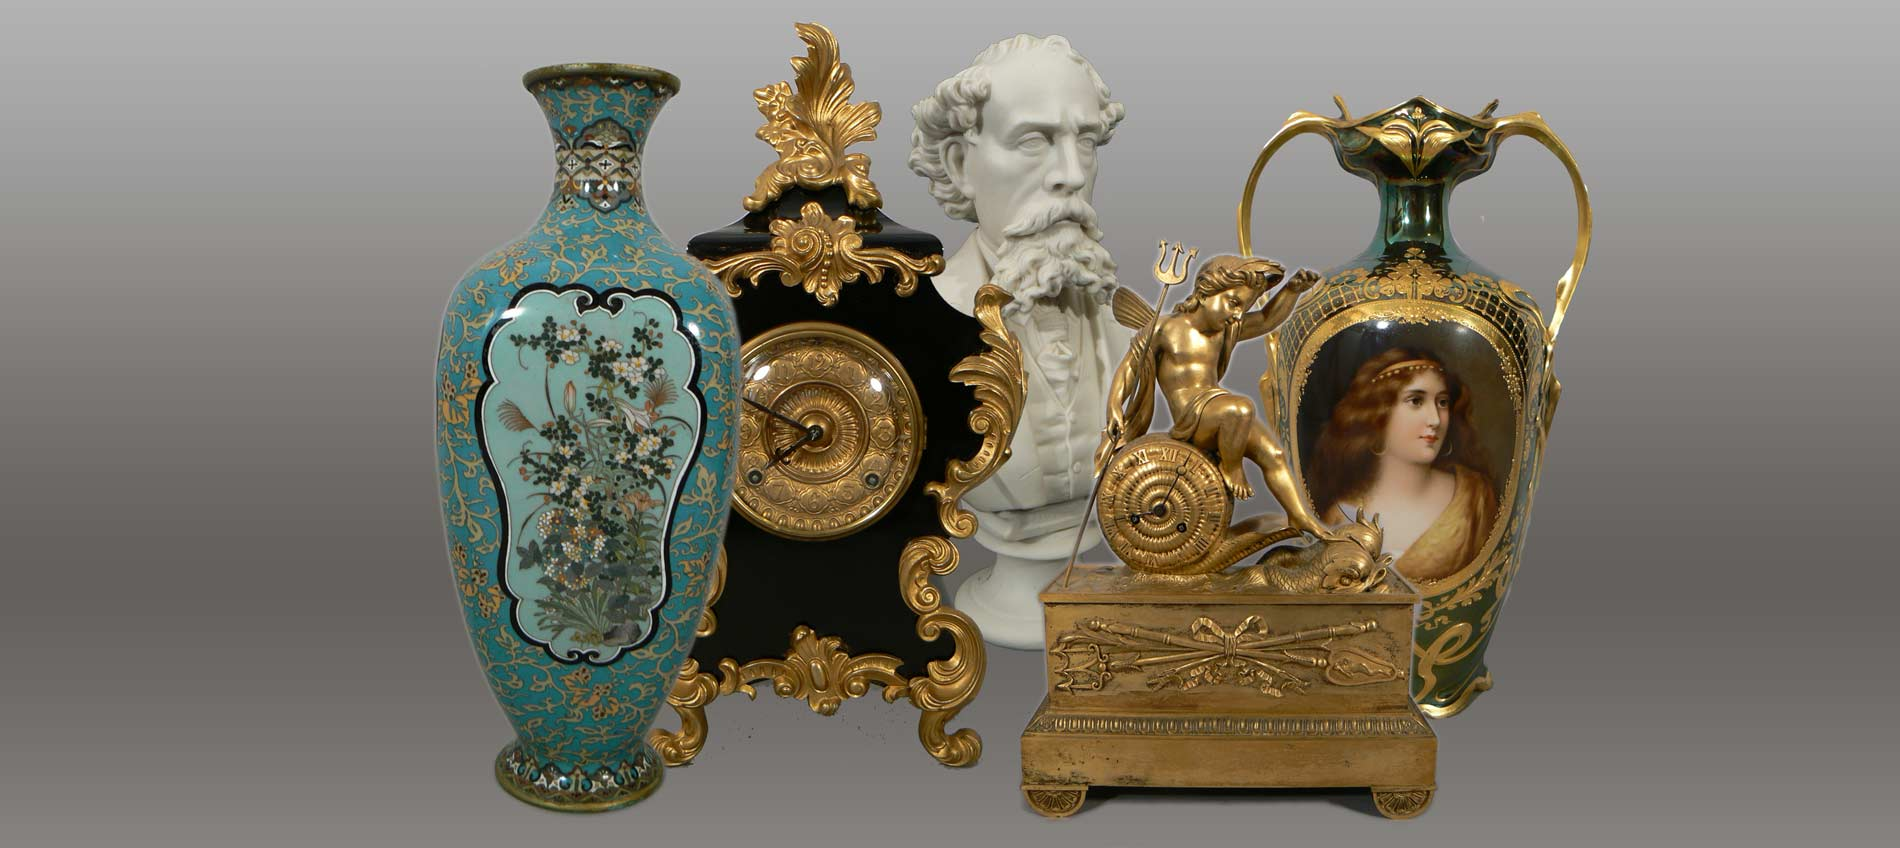 clocks, vases, ormolu